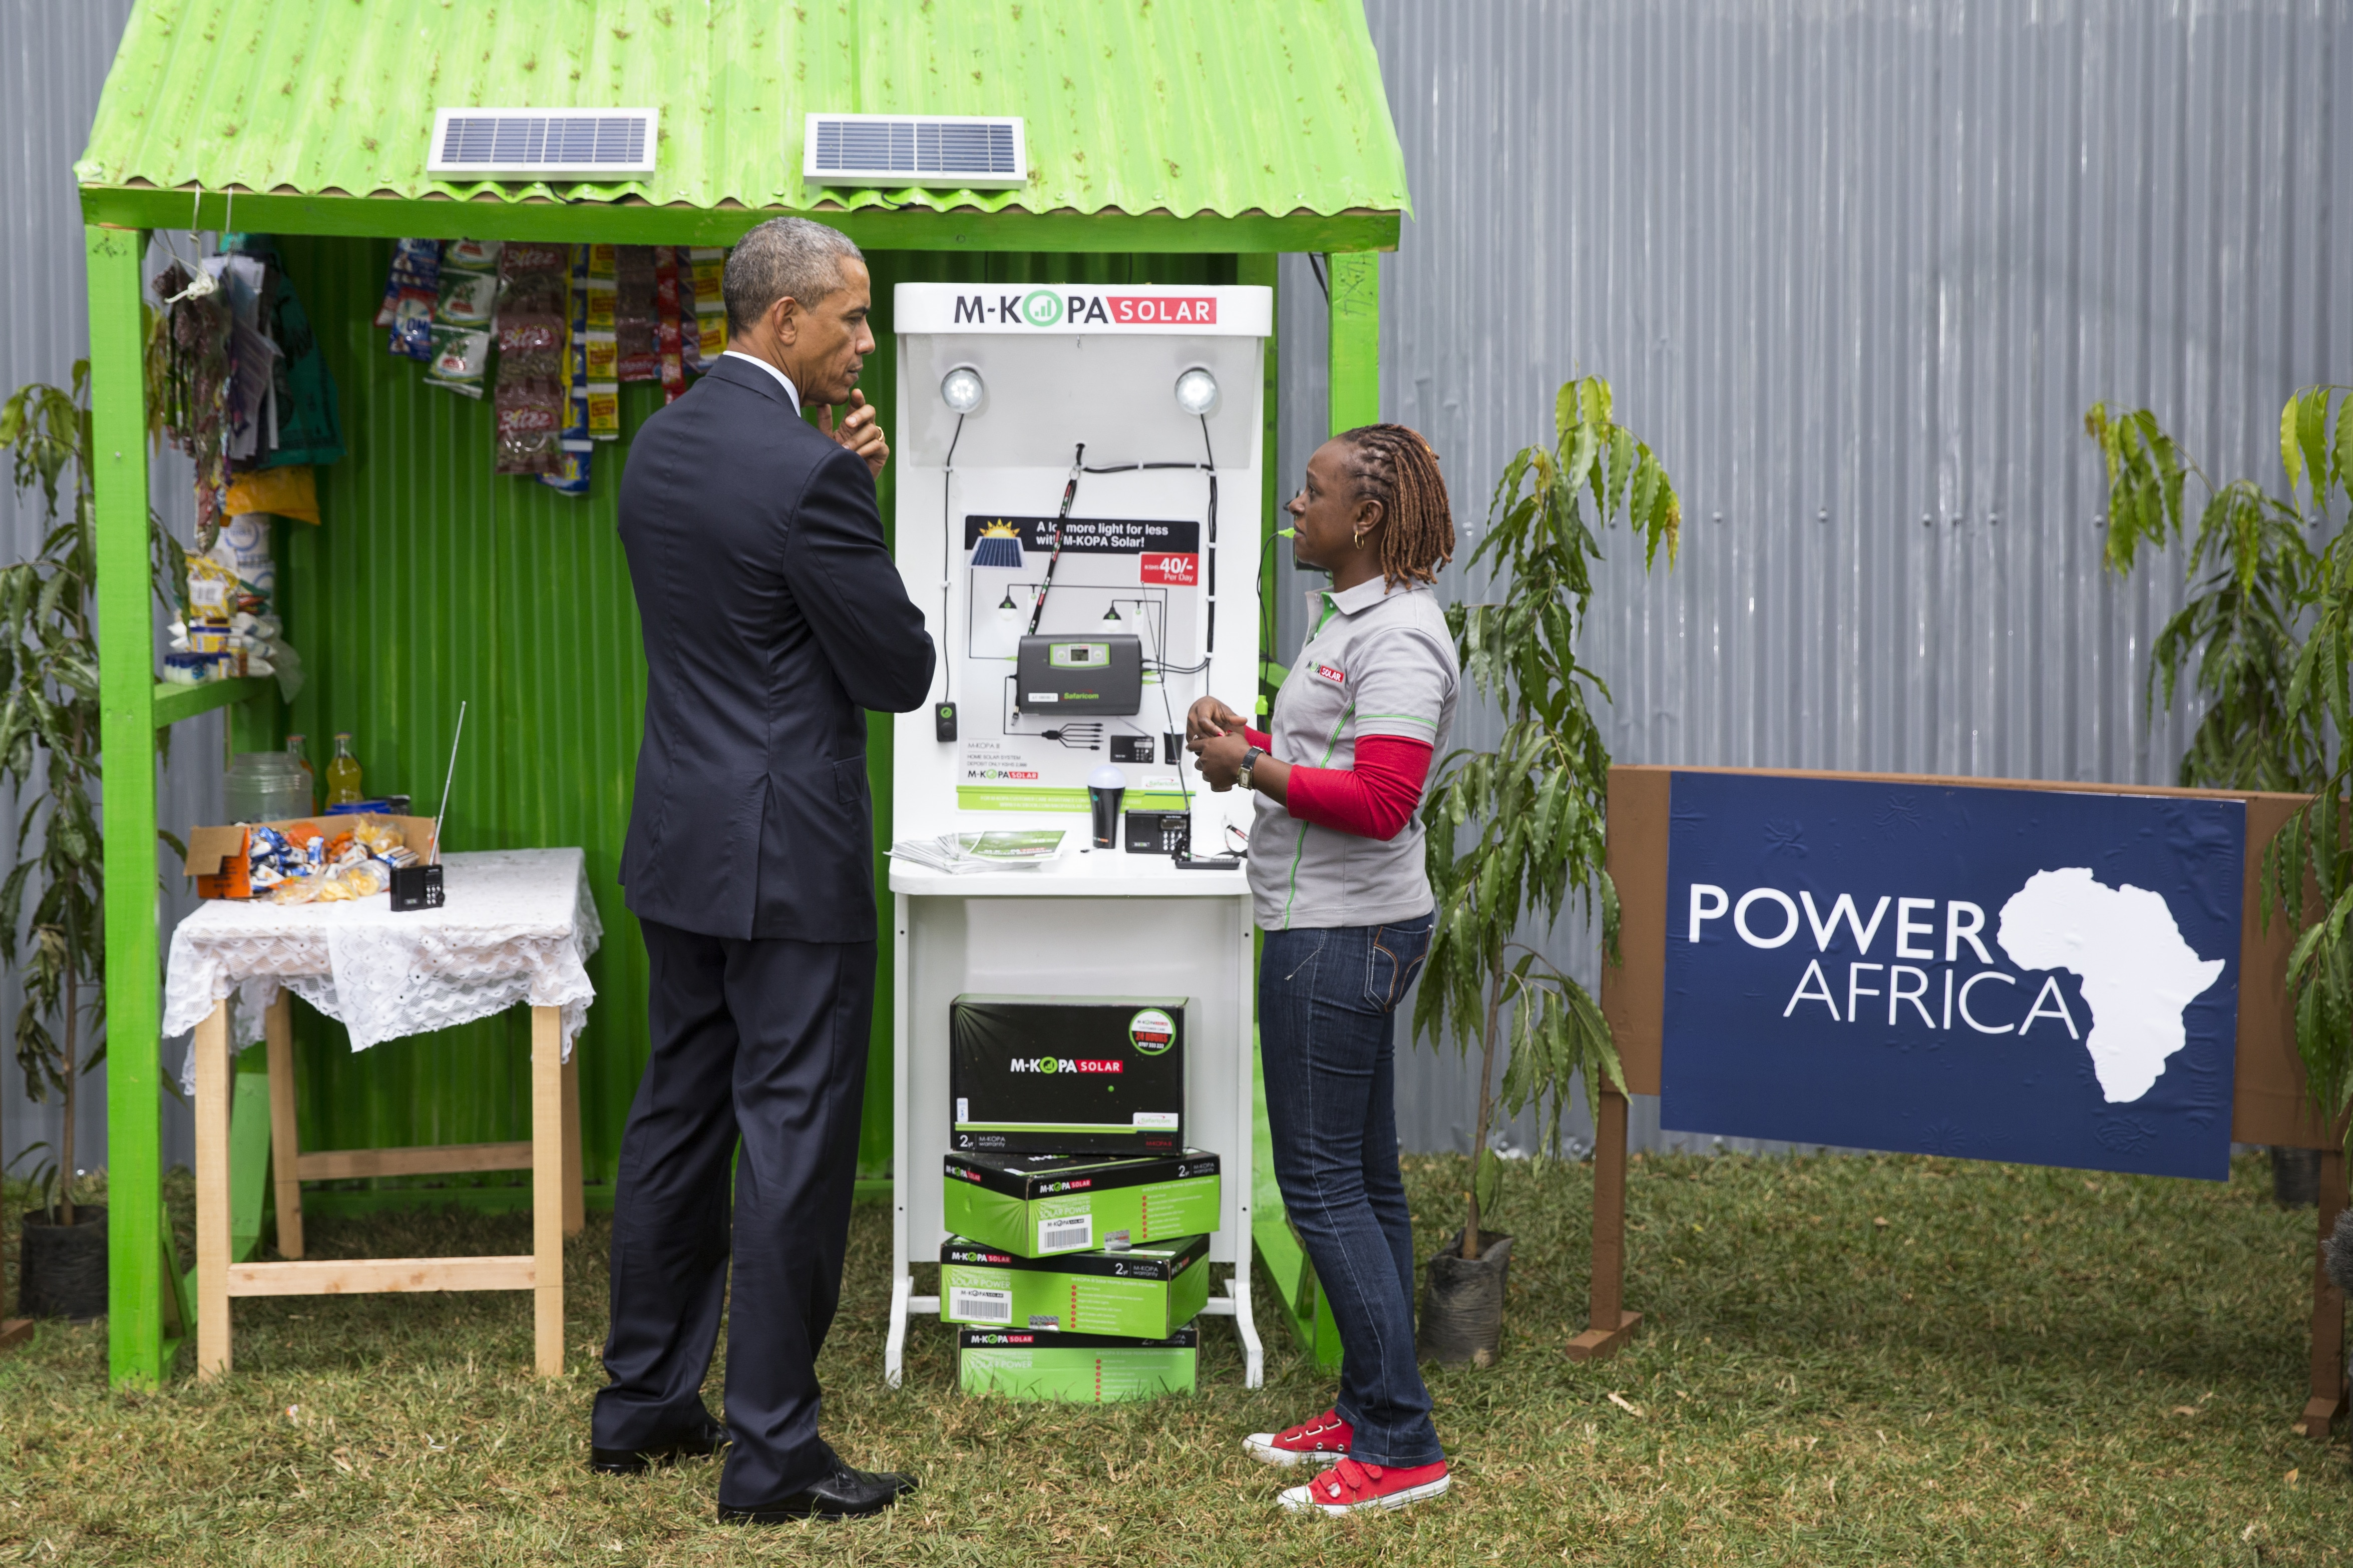 Exhibition Booths Kenya : New technology enables solar power boom in africa